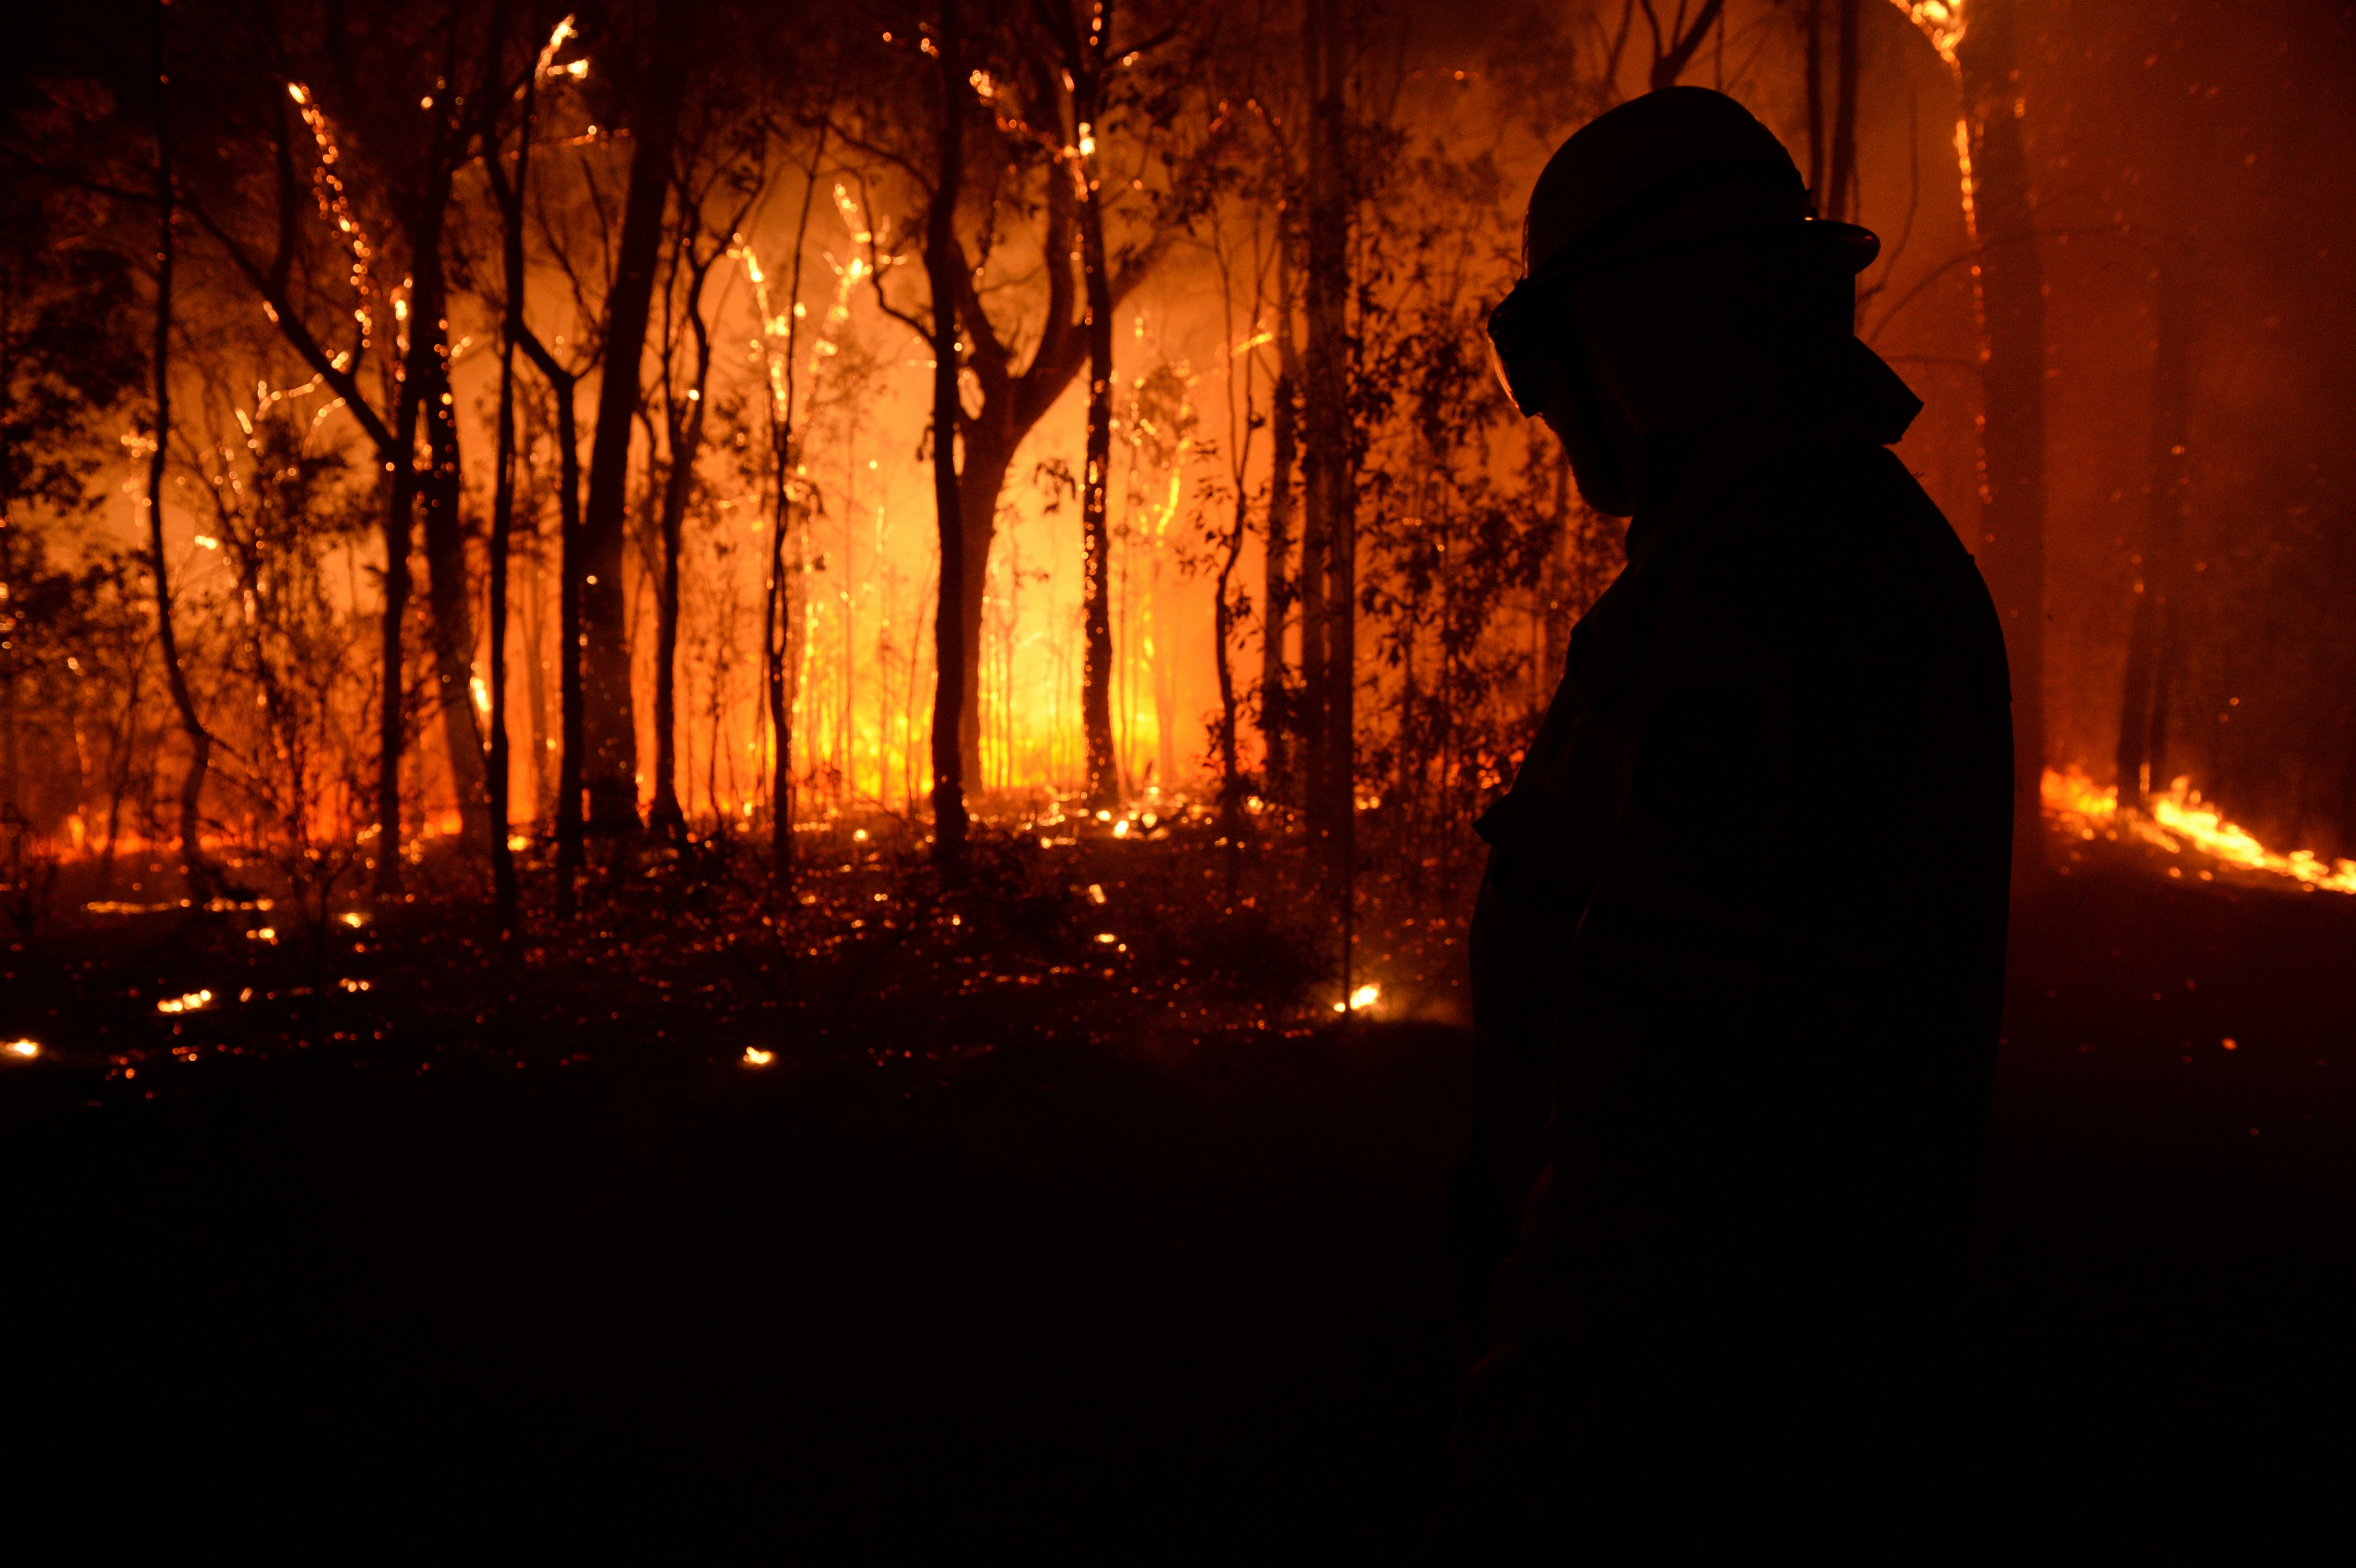 What firefighters say about climate change